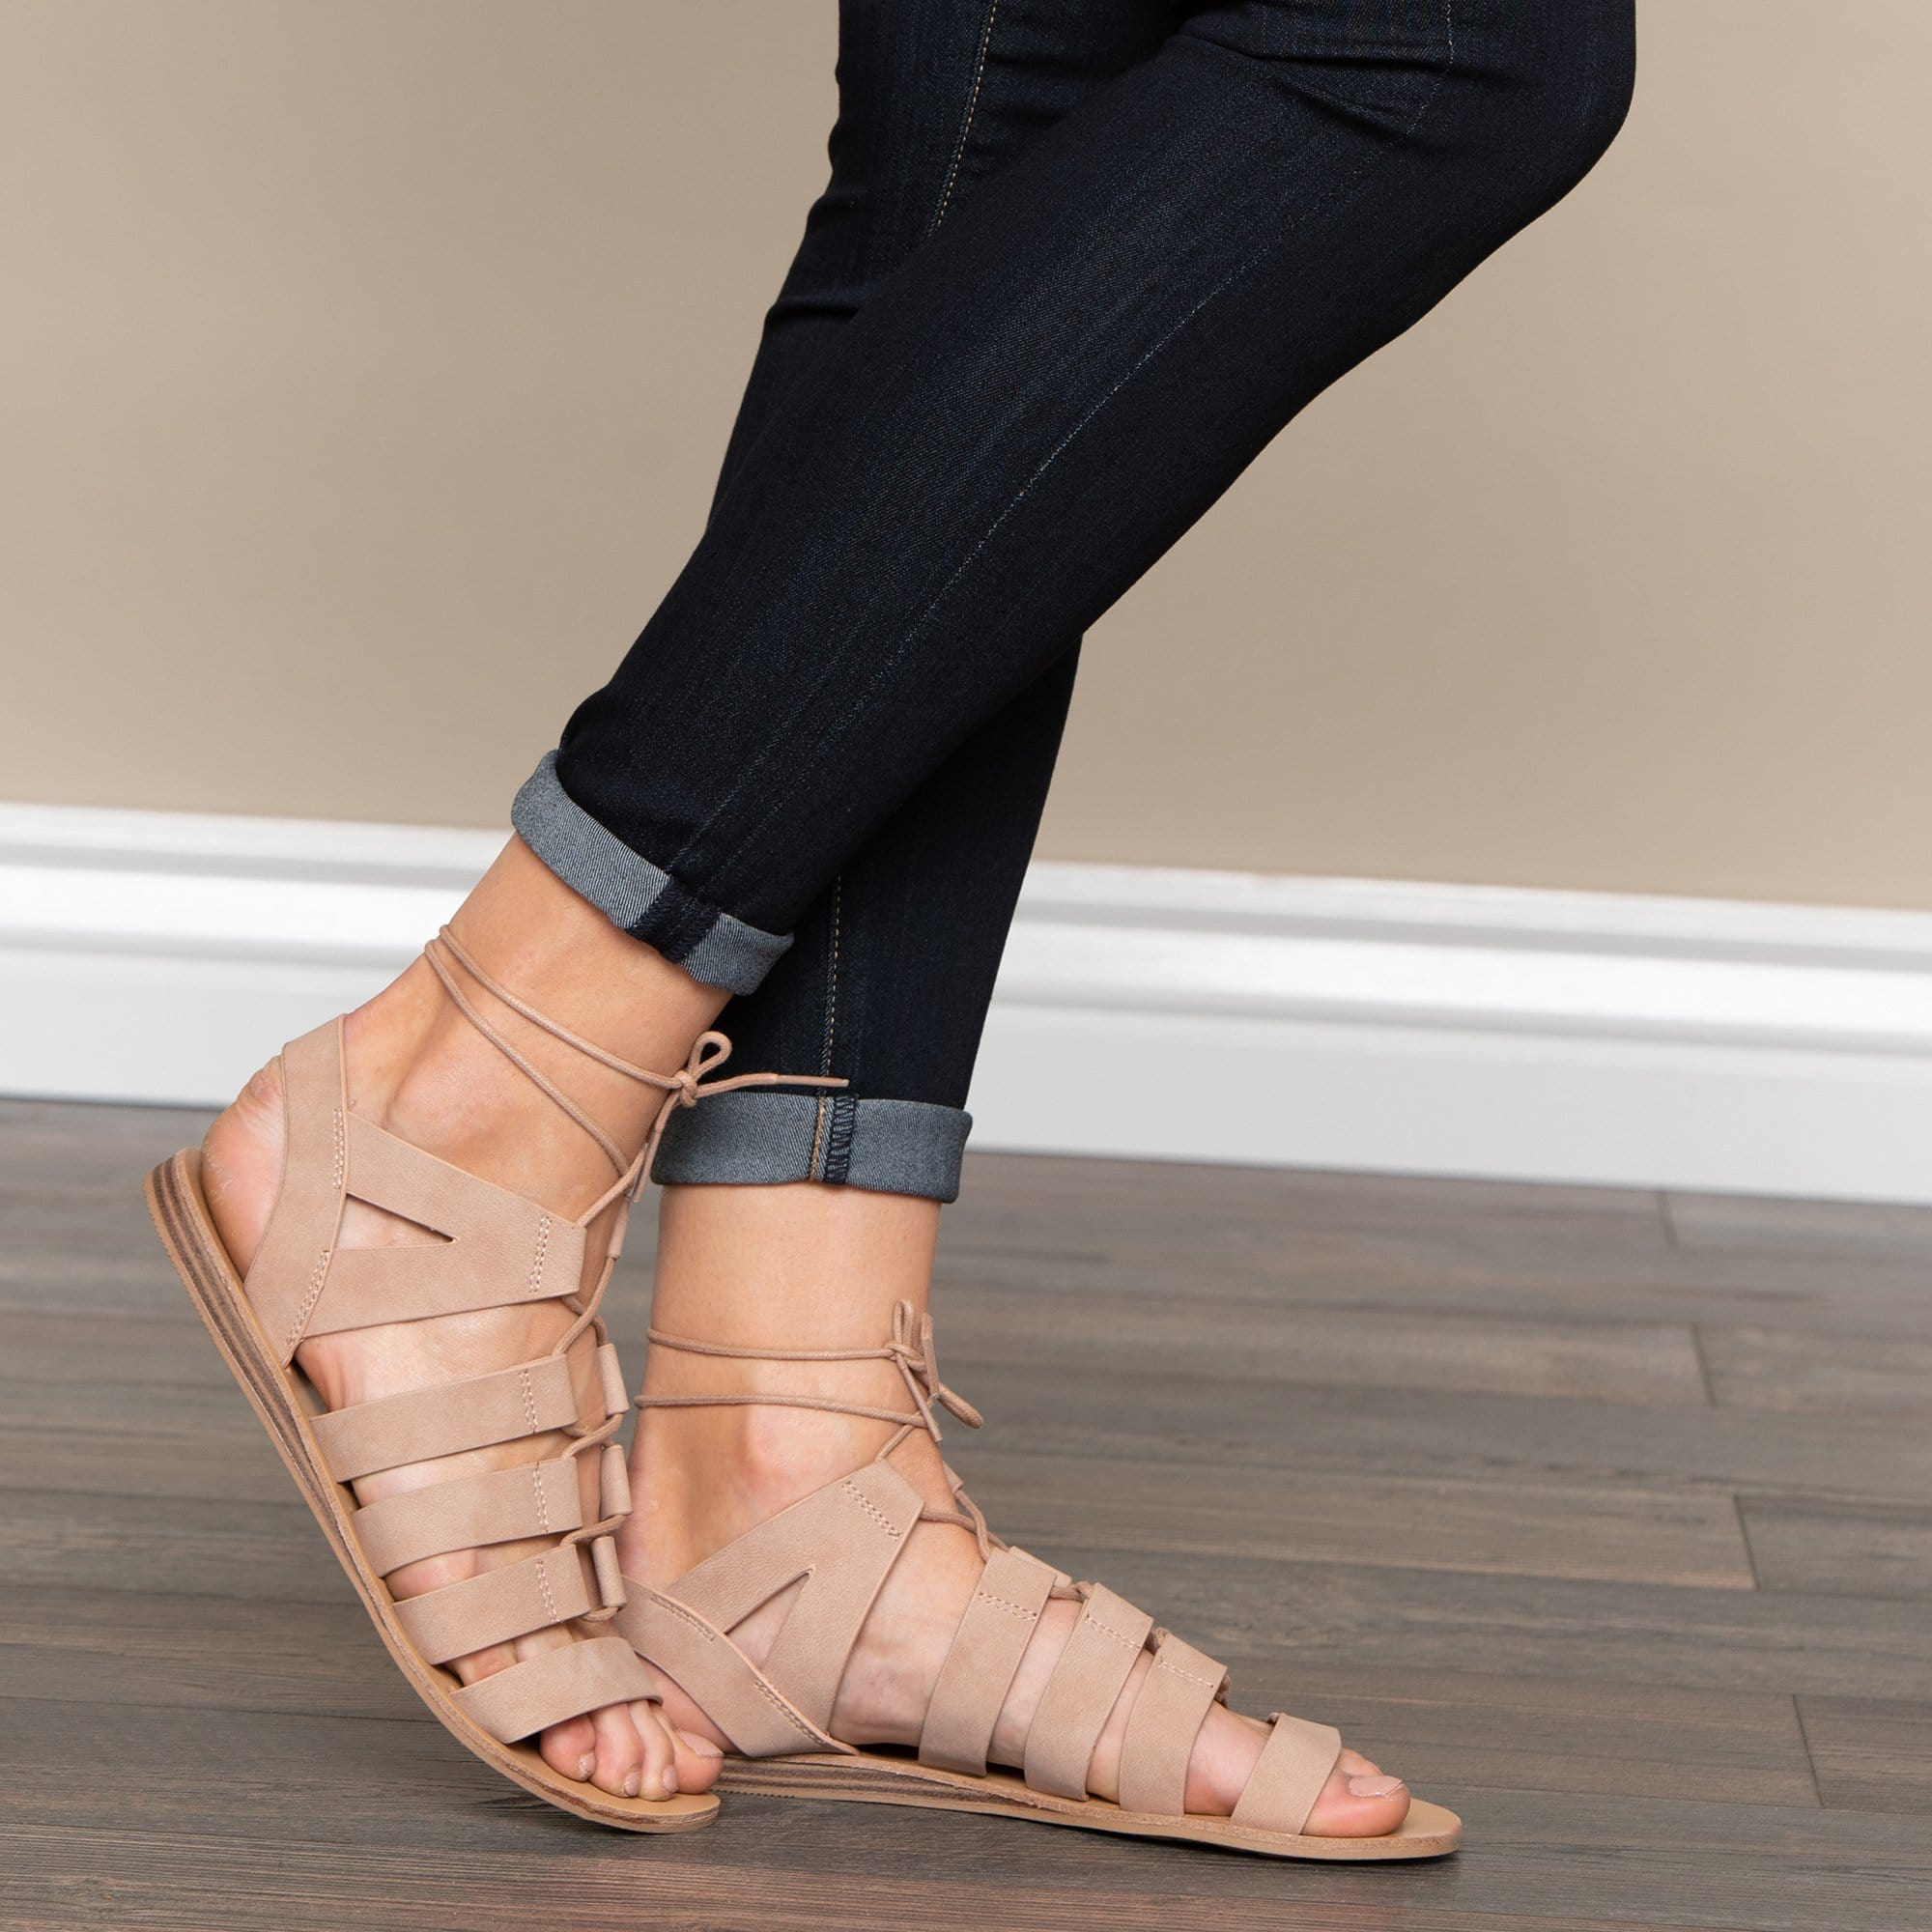 Autumn Lace Up Sandal